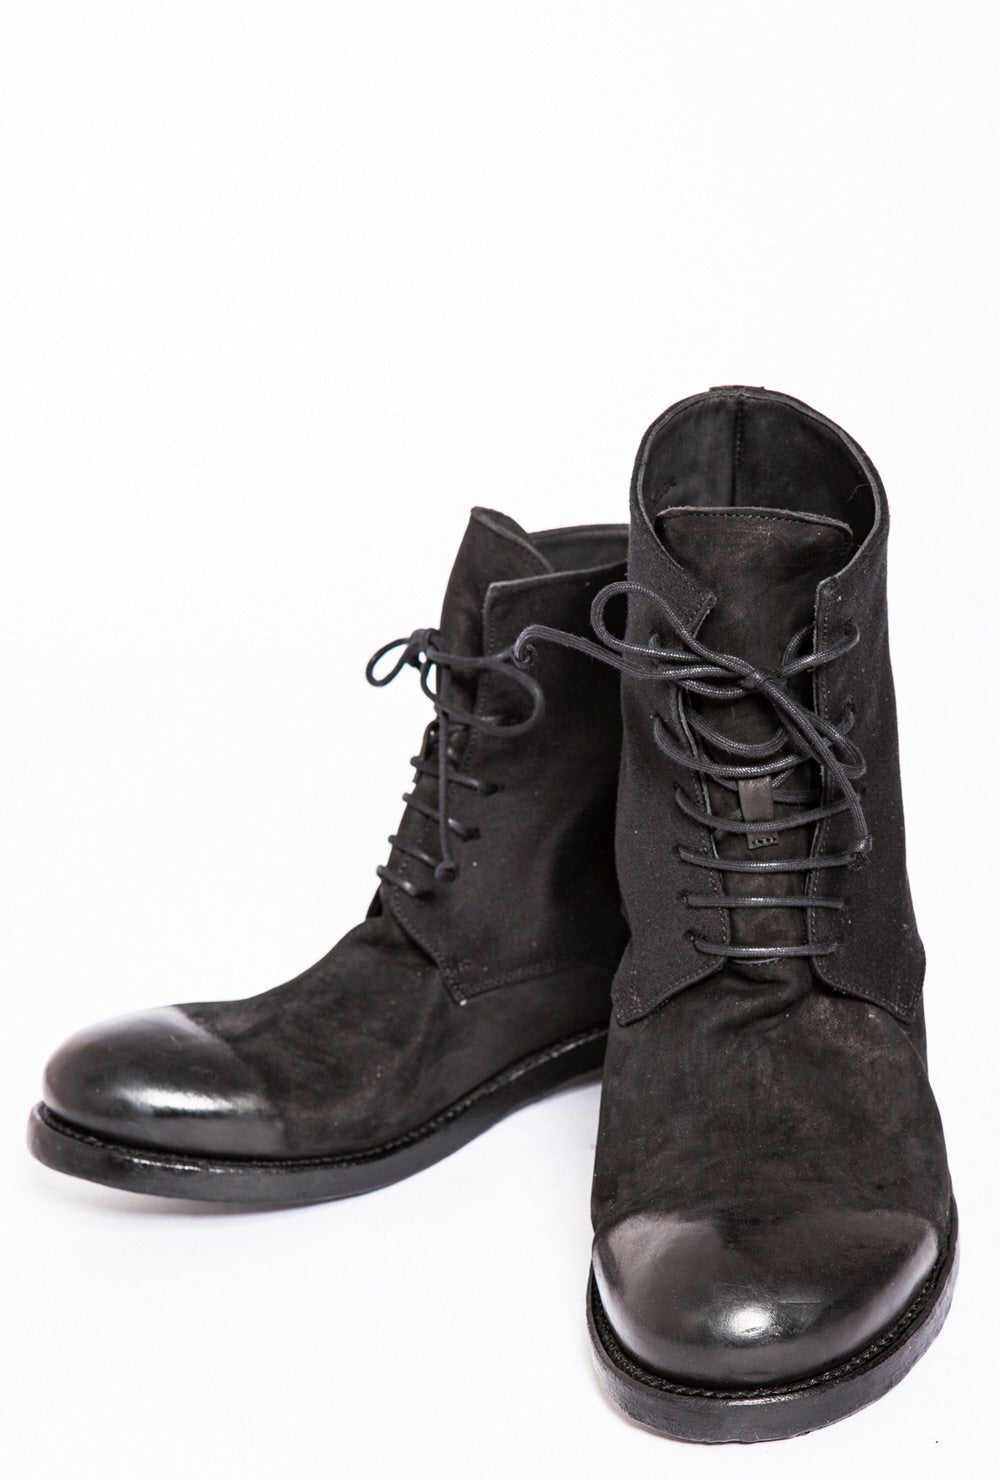 Hannes Roether / Last Conspiracy Black Boot